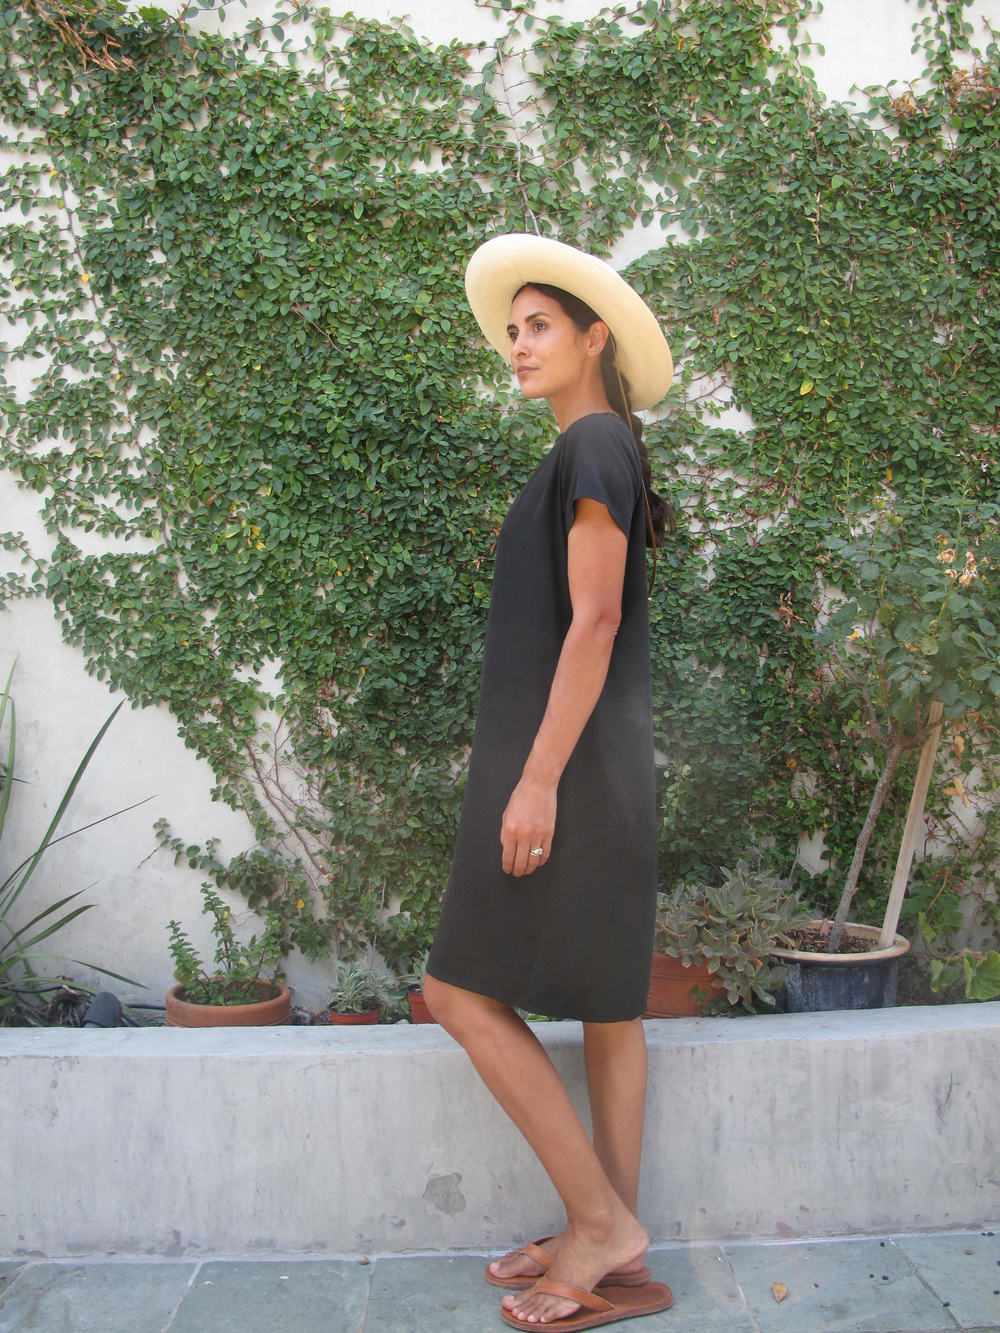 Beach/summer casual   One of the things I love about this dress is its ease, so for my first outfit I kept it really simple. This look is perfect for the beach, farmers market, or just about anything else on a warm day when you require comfort and functionality. Ethically made Panama hat picked up from  Magpi  shop in Studio City, shop USA made versions from  Clyde  and  Janessa Leone . Leather flip flops by  Moment Goods , hand made in the USA.